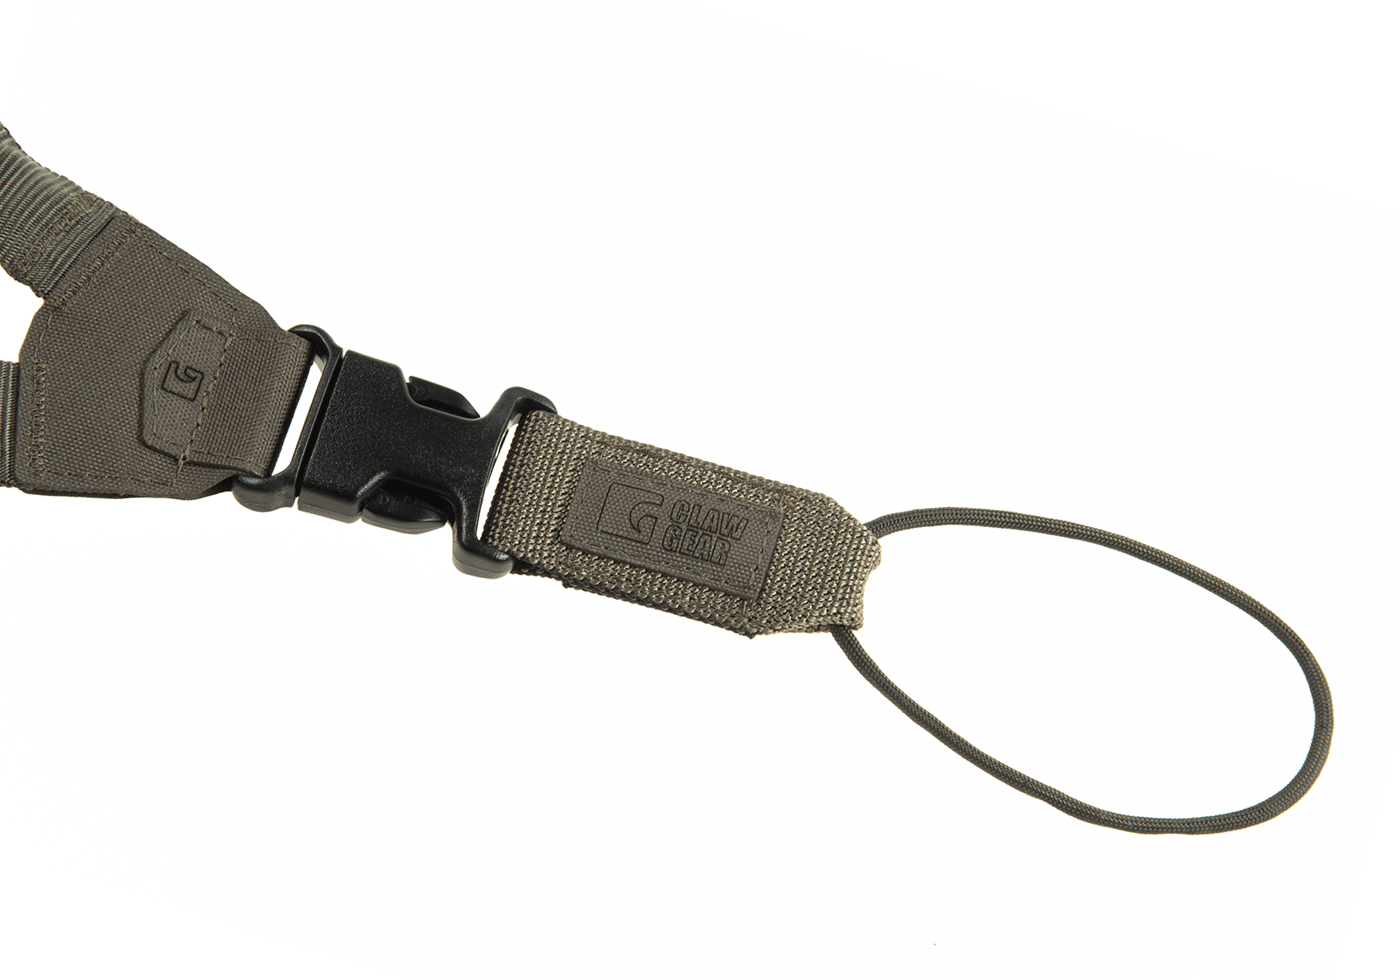 https://www.softgun.ch/shop/bilder/REALSTEEL/CLAWGEAR/CLAWGEAR-ONE-POINT-SLING-PARACORD-RAL7013_04.png